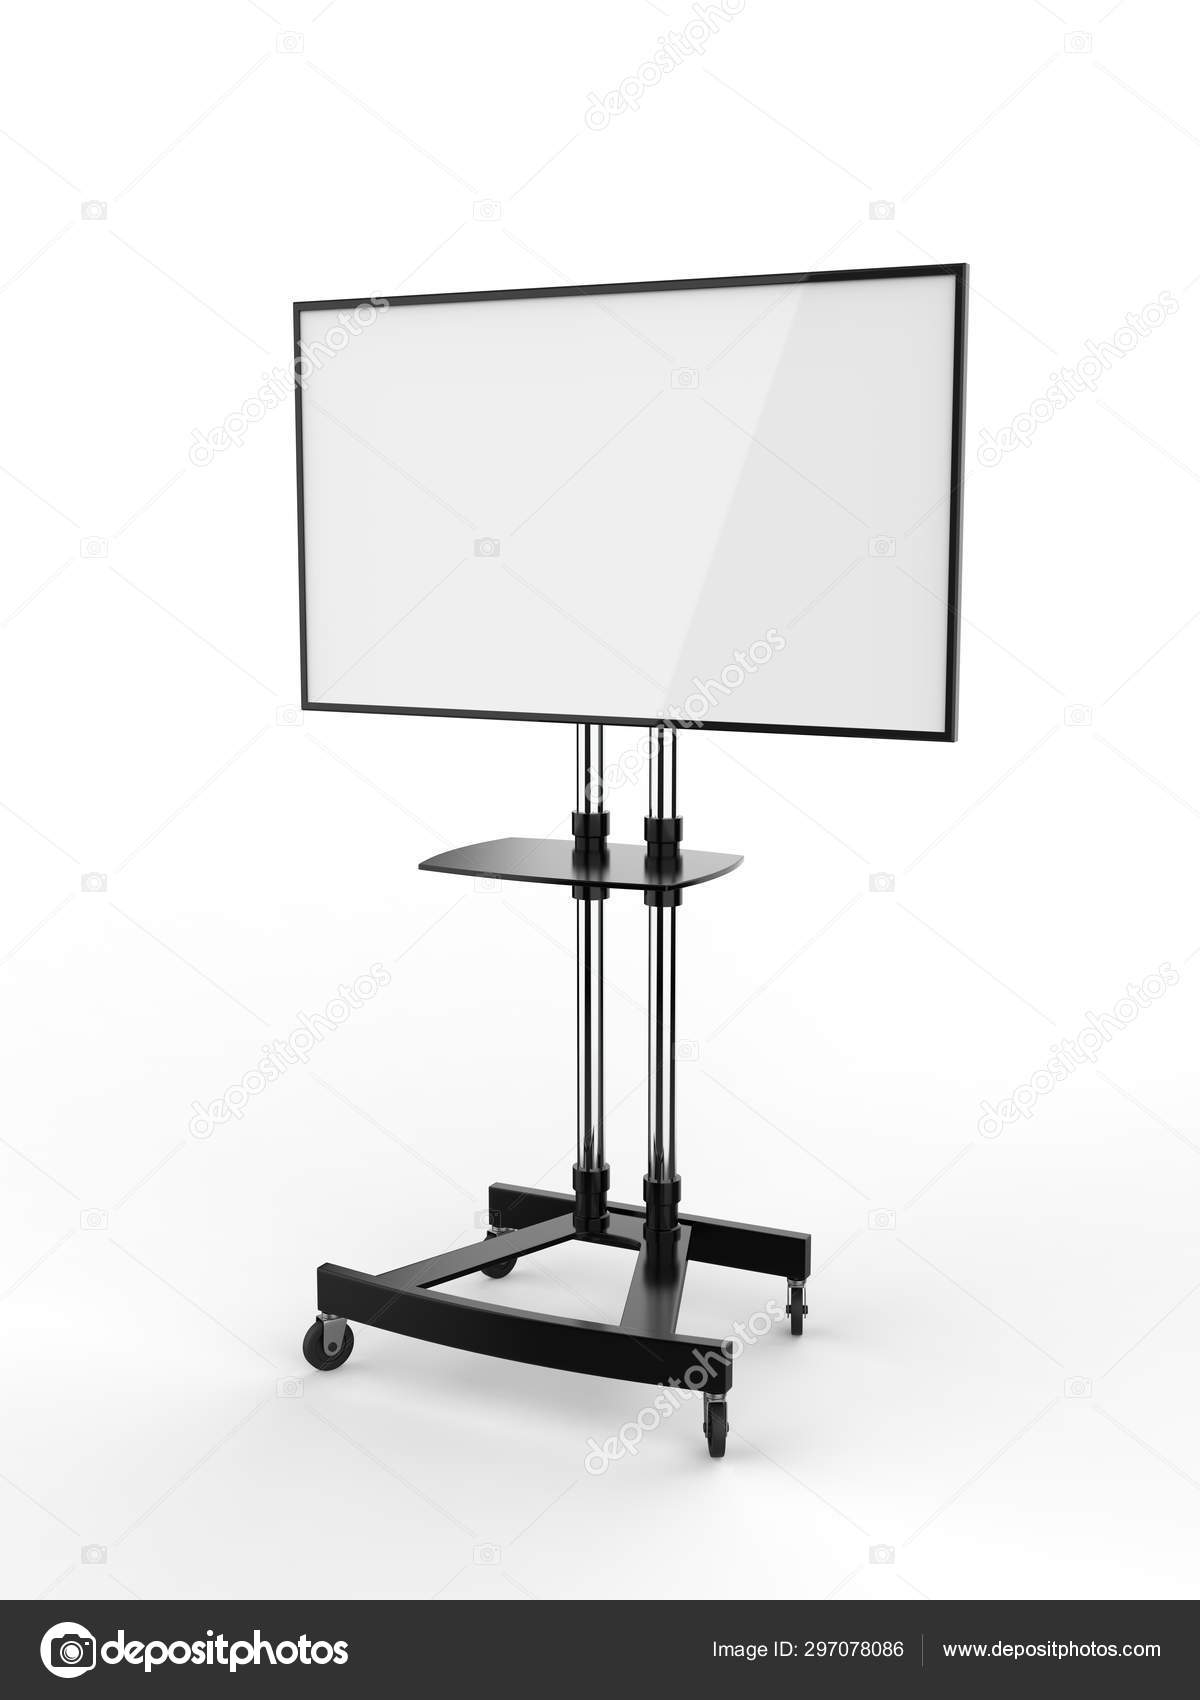 Mobile Blank White Screen Trolley Stand Mount Cart